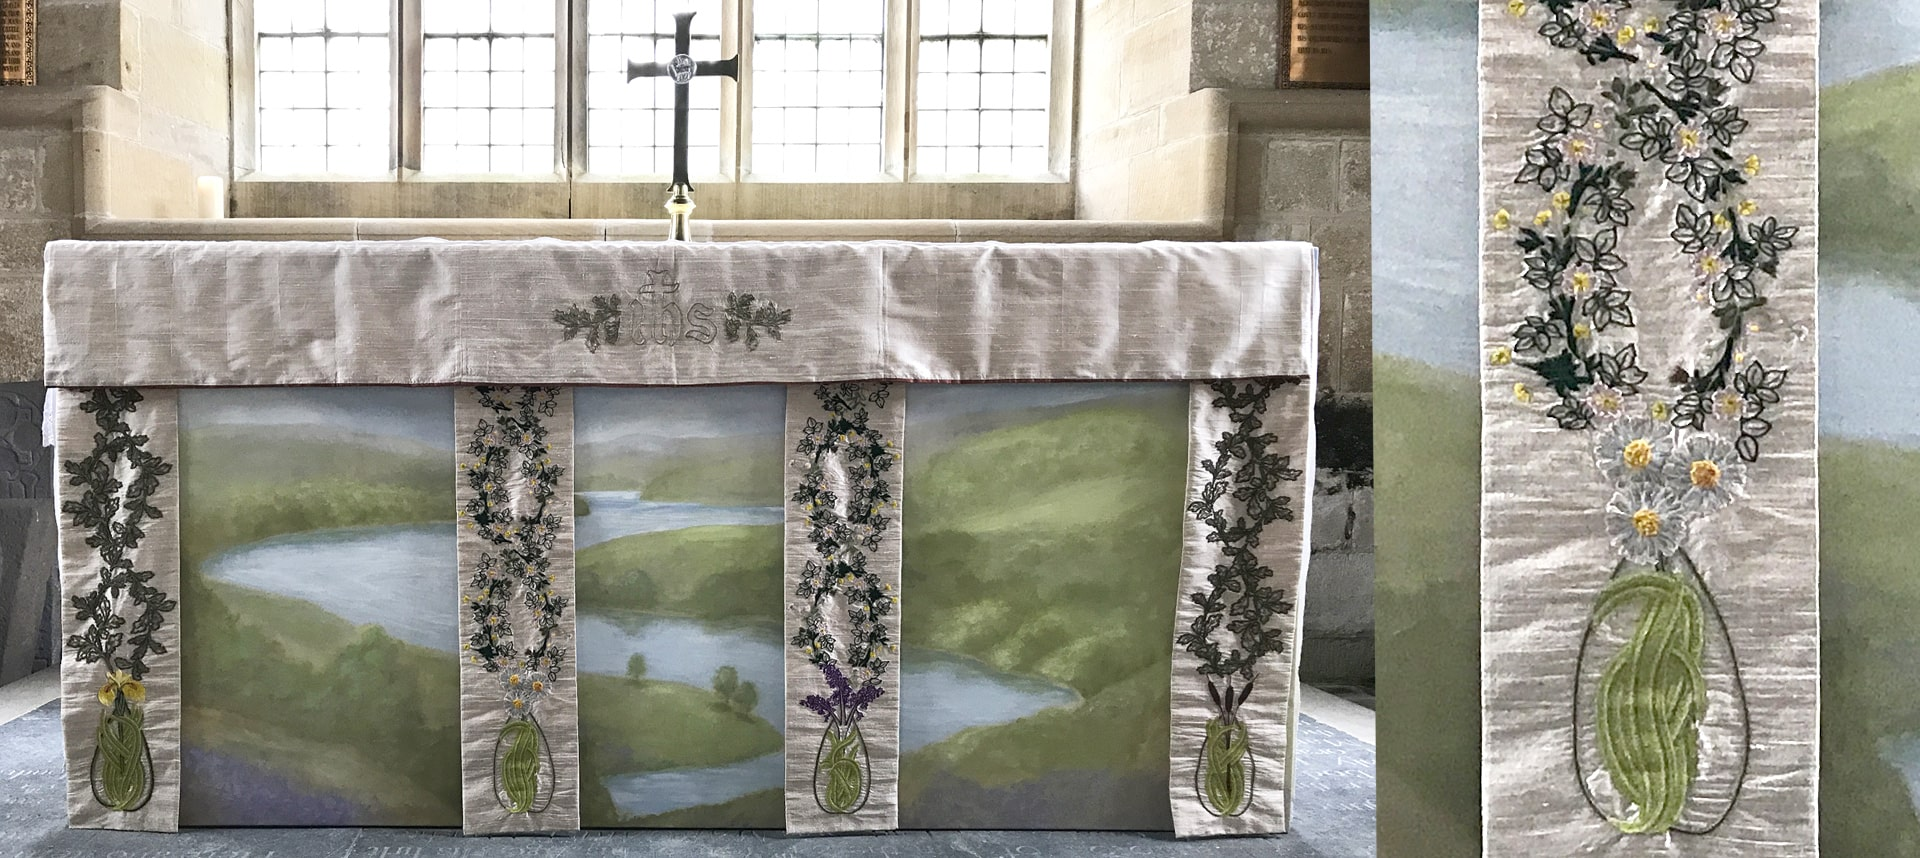 Fine Cell Work Ecclesiastical Design Church Altar Cloth Handmade Hand Embroidered Charity Kirkhale Daisy Floral Detail